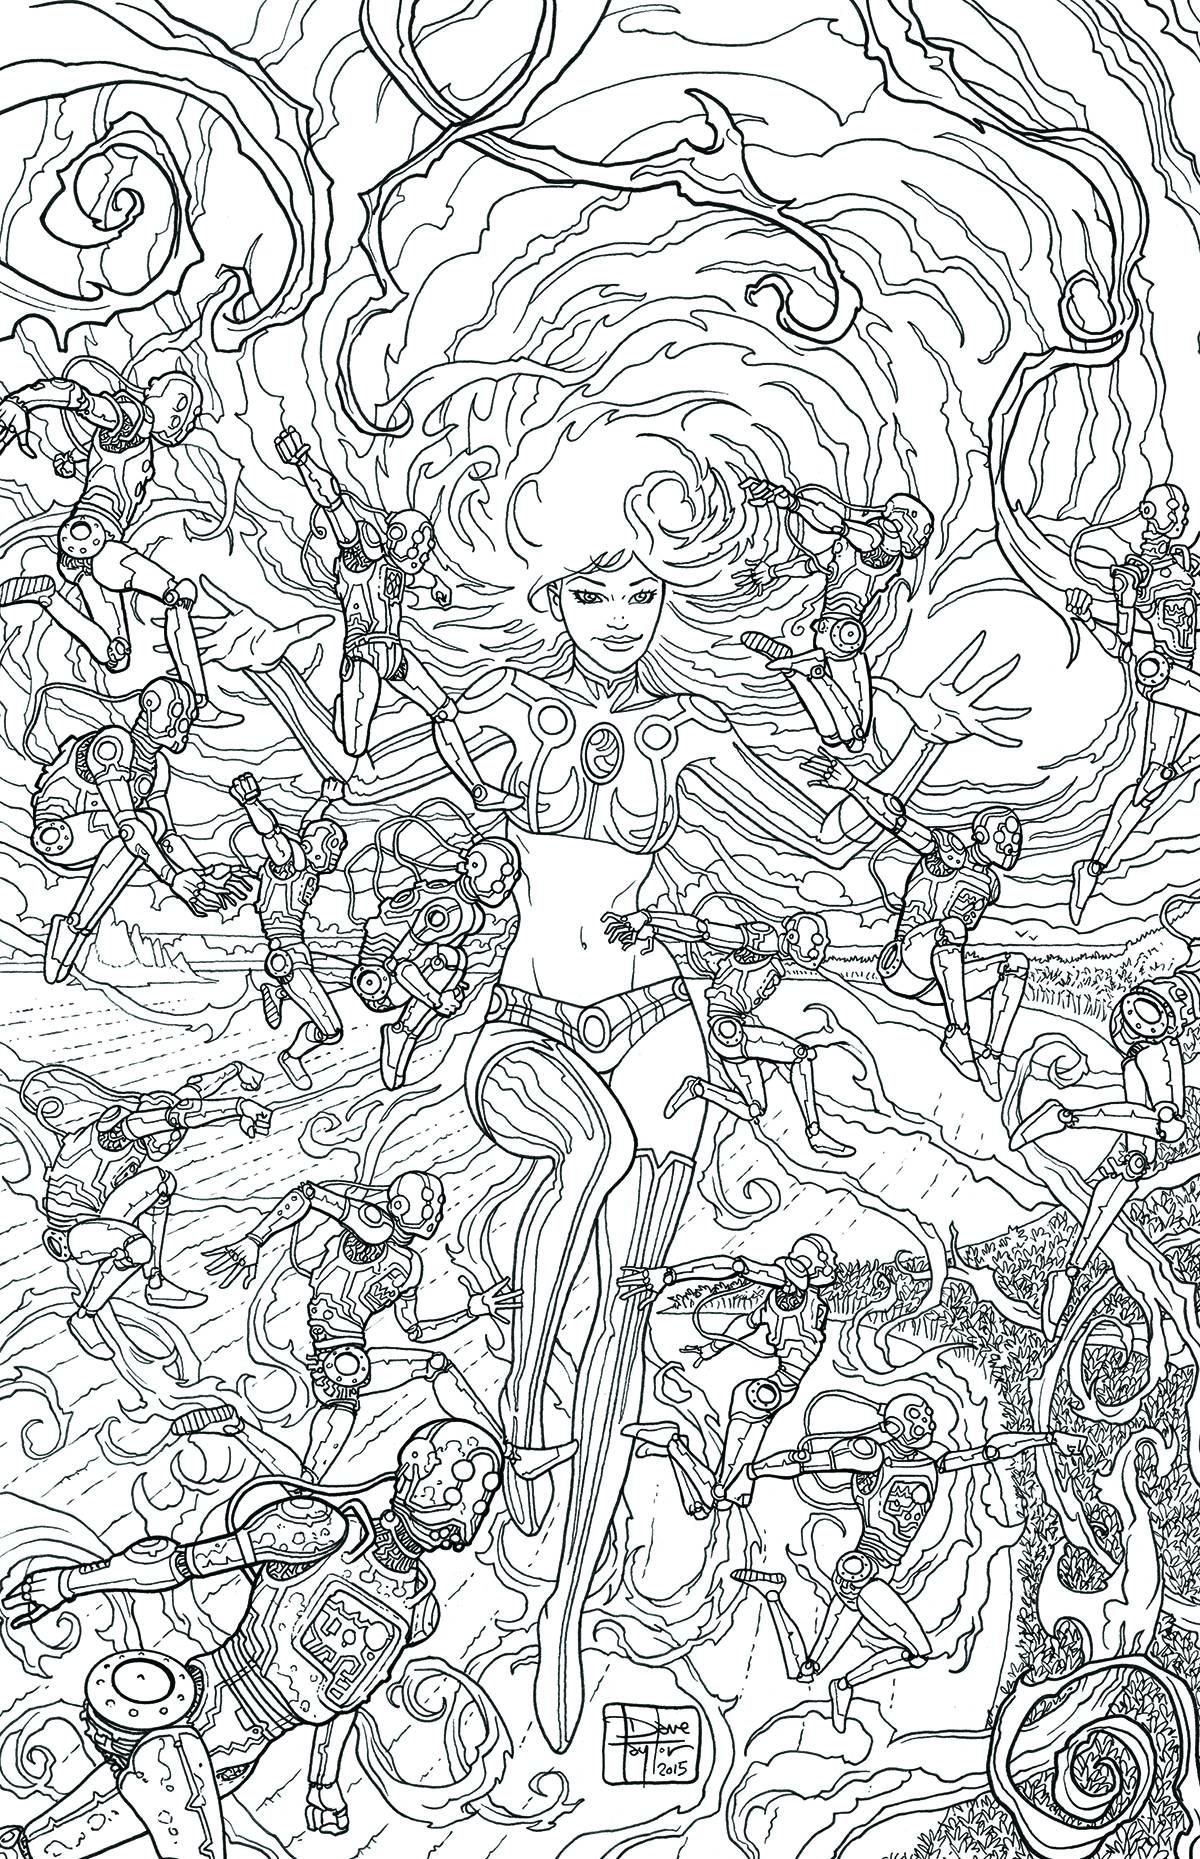 Shop for Starfire 8 Adult Coloring Book Variant Cover from DC